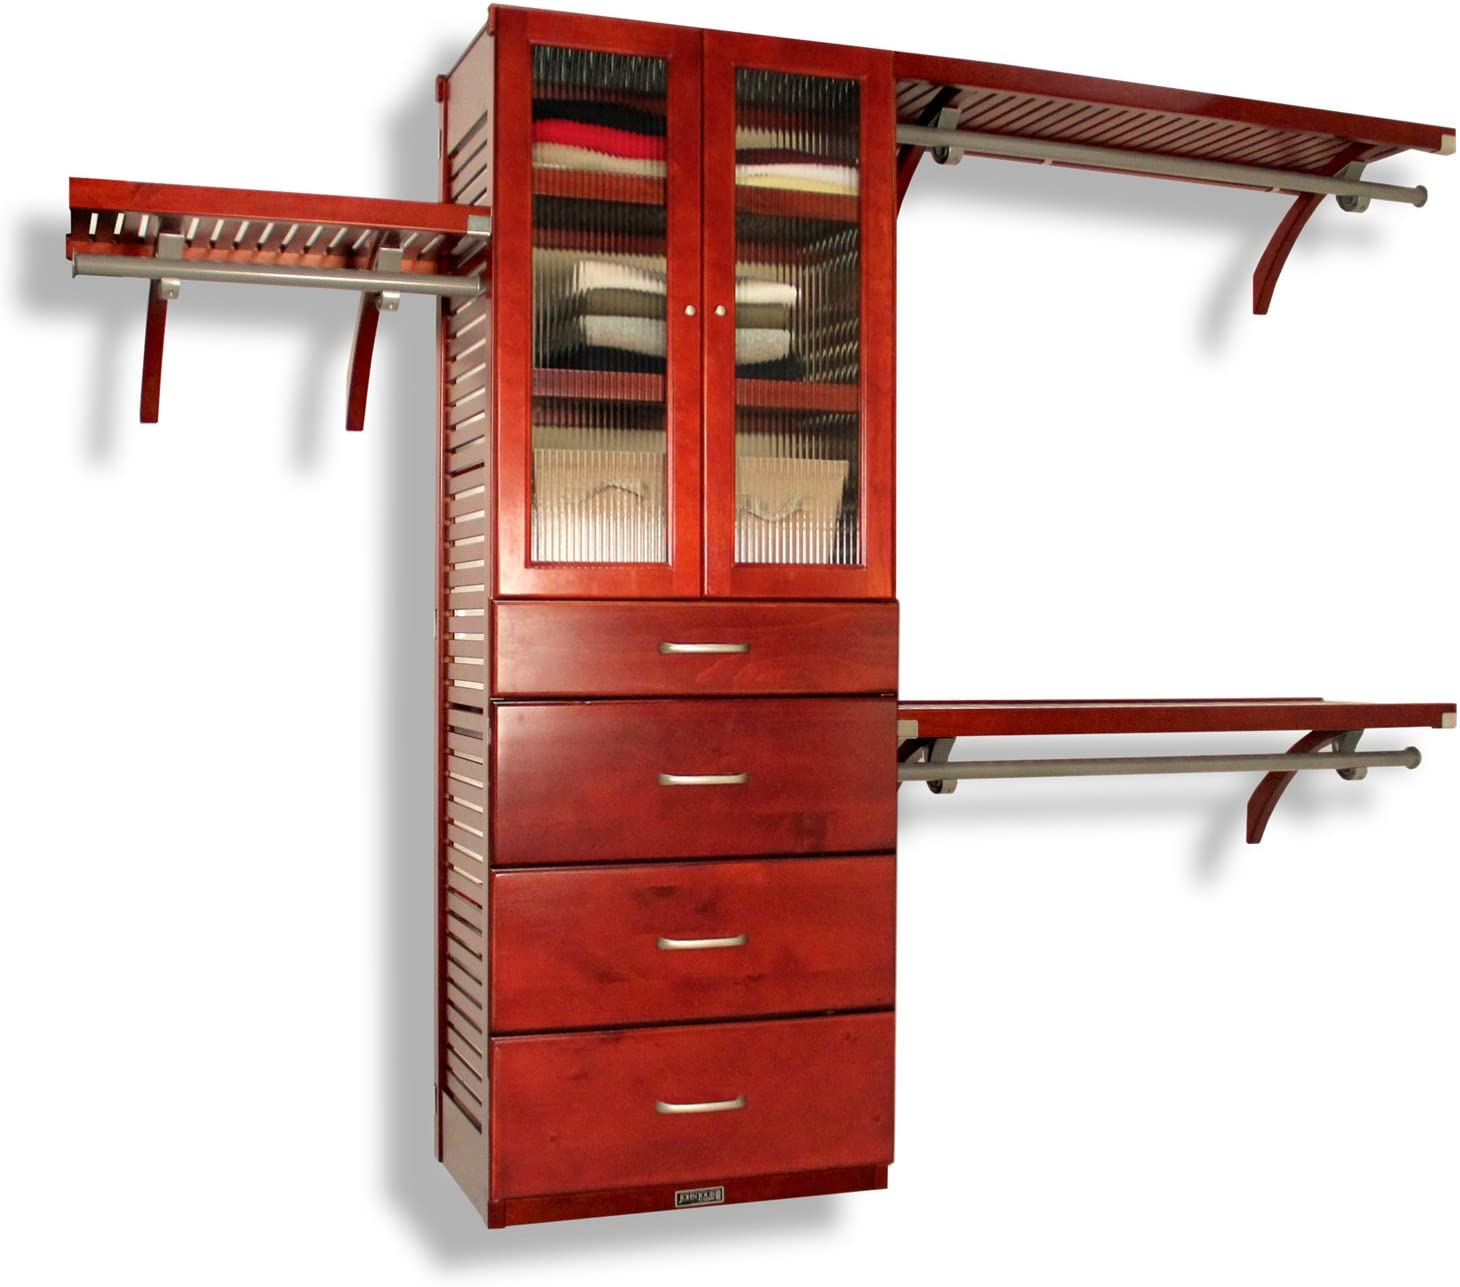 John Louis Home 16 in. Deep Deluxe Solid Wood Closet Organizer, 4 Drawers with Doors, Red Mahogany Finish